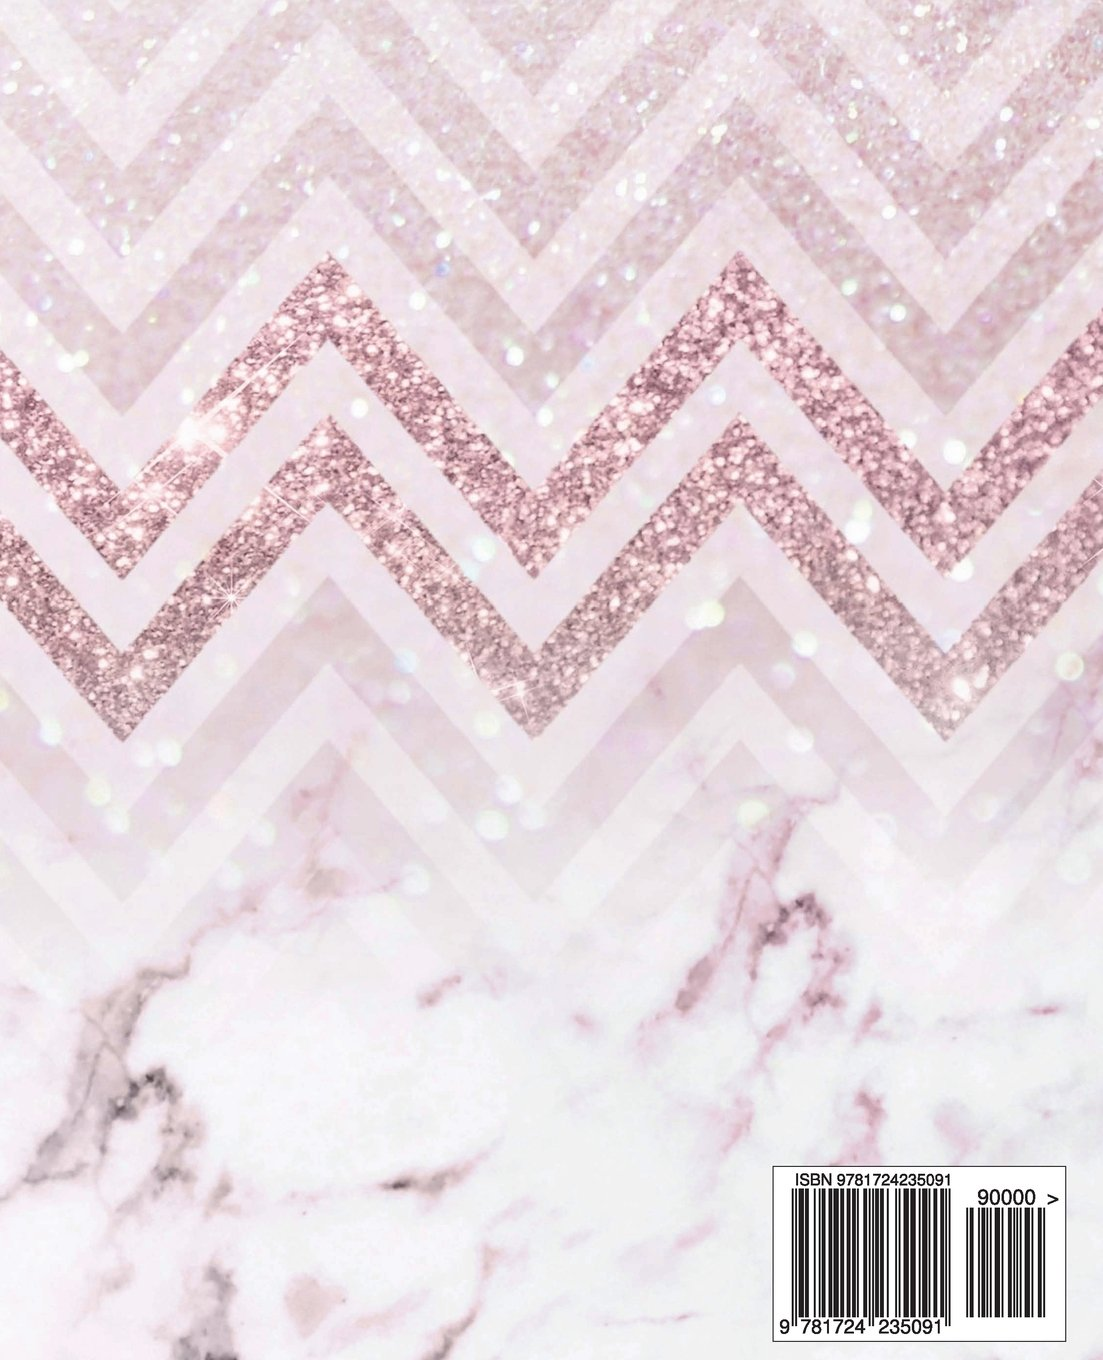 Composition Notebook Rose Gold Marble Chevron College 1103x1360 Wallpaper Teahub Io